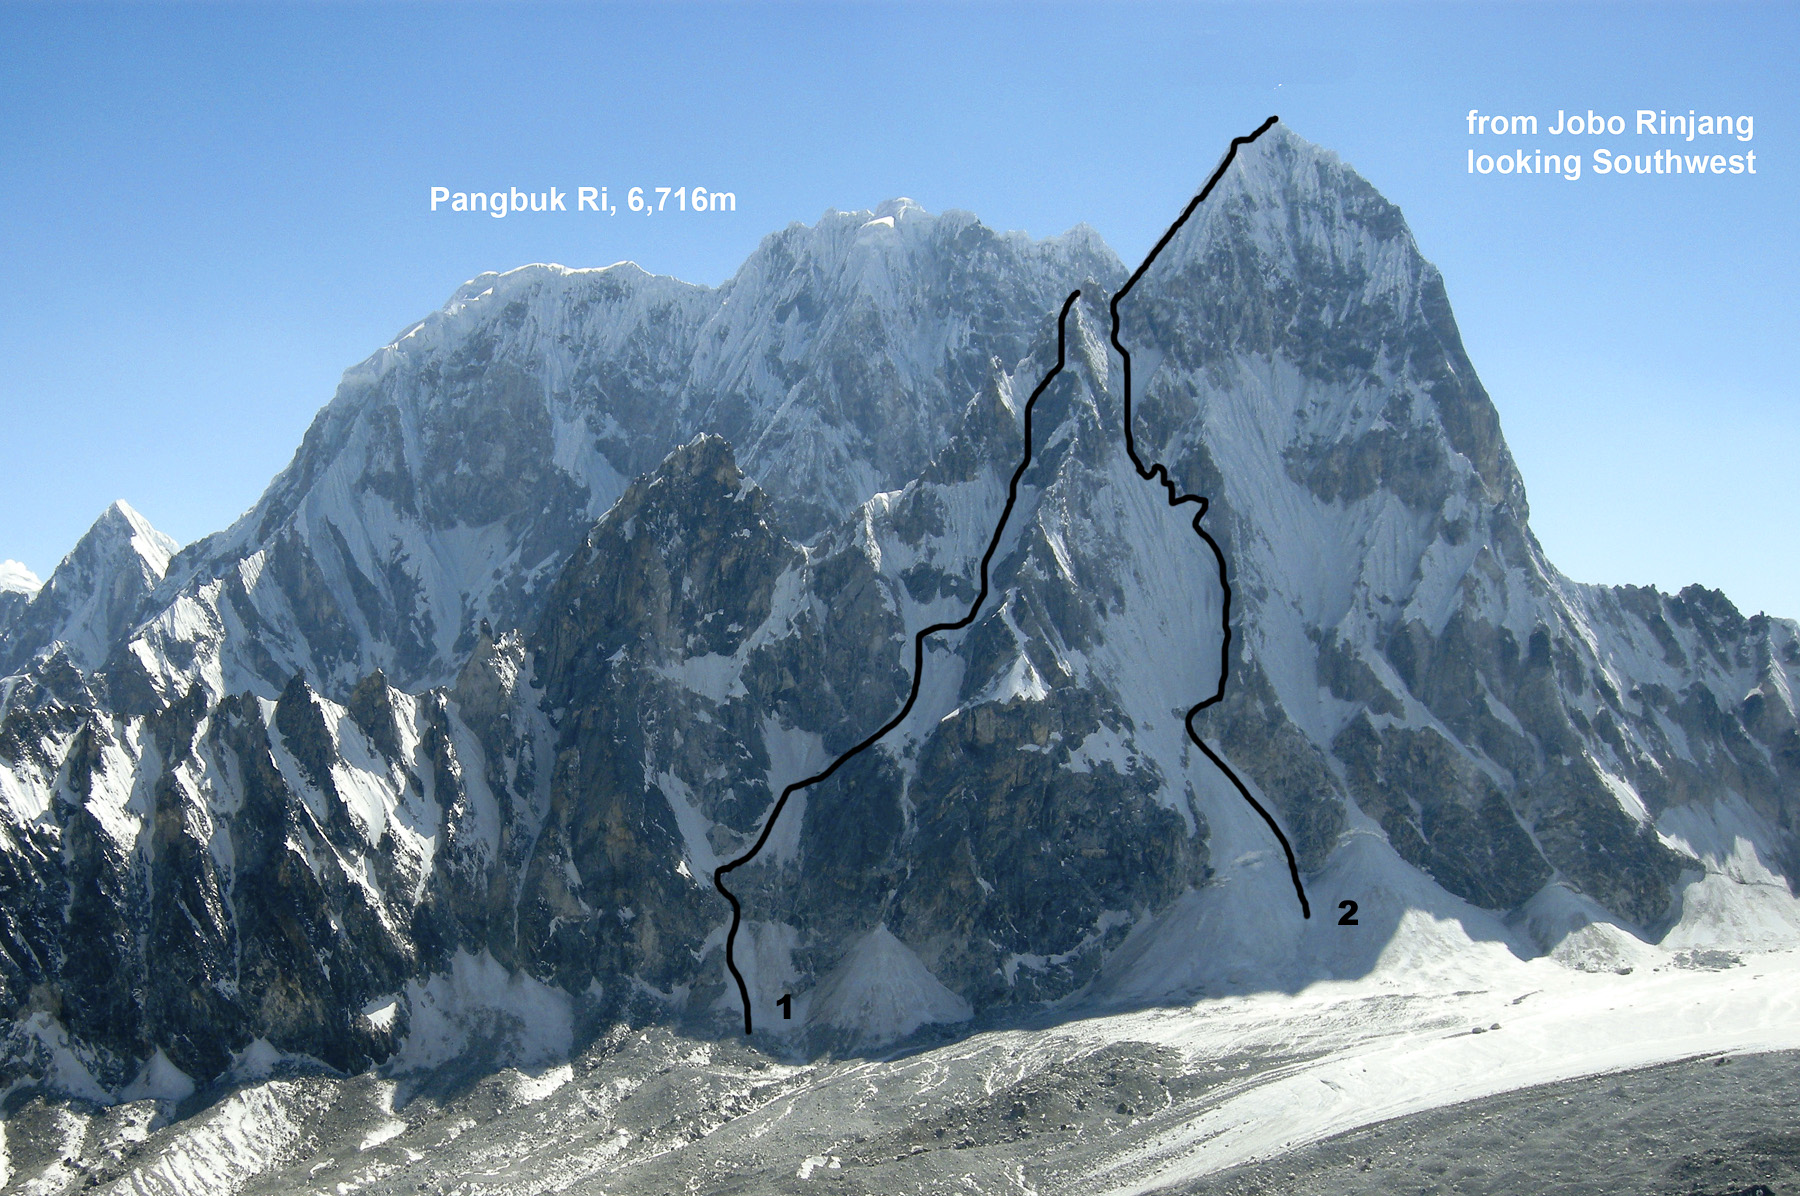 Looking southwest from Jobo Rinjang at Jobo LeCoultre. (1) 2010 attempt, which stopped on the southeast ridge at ca 6,200m. (2) 2009 line claimed by French-Nepal-Swiss team (summit reached by Carrad, Haeni, Schaffter, and Vallot).